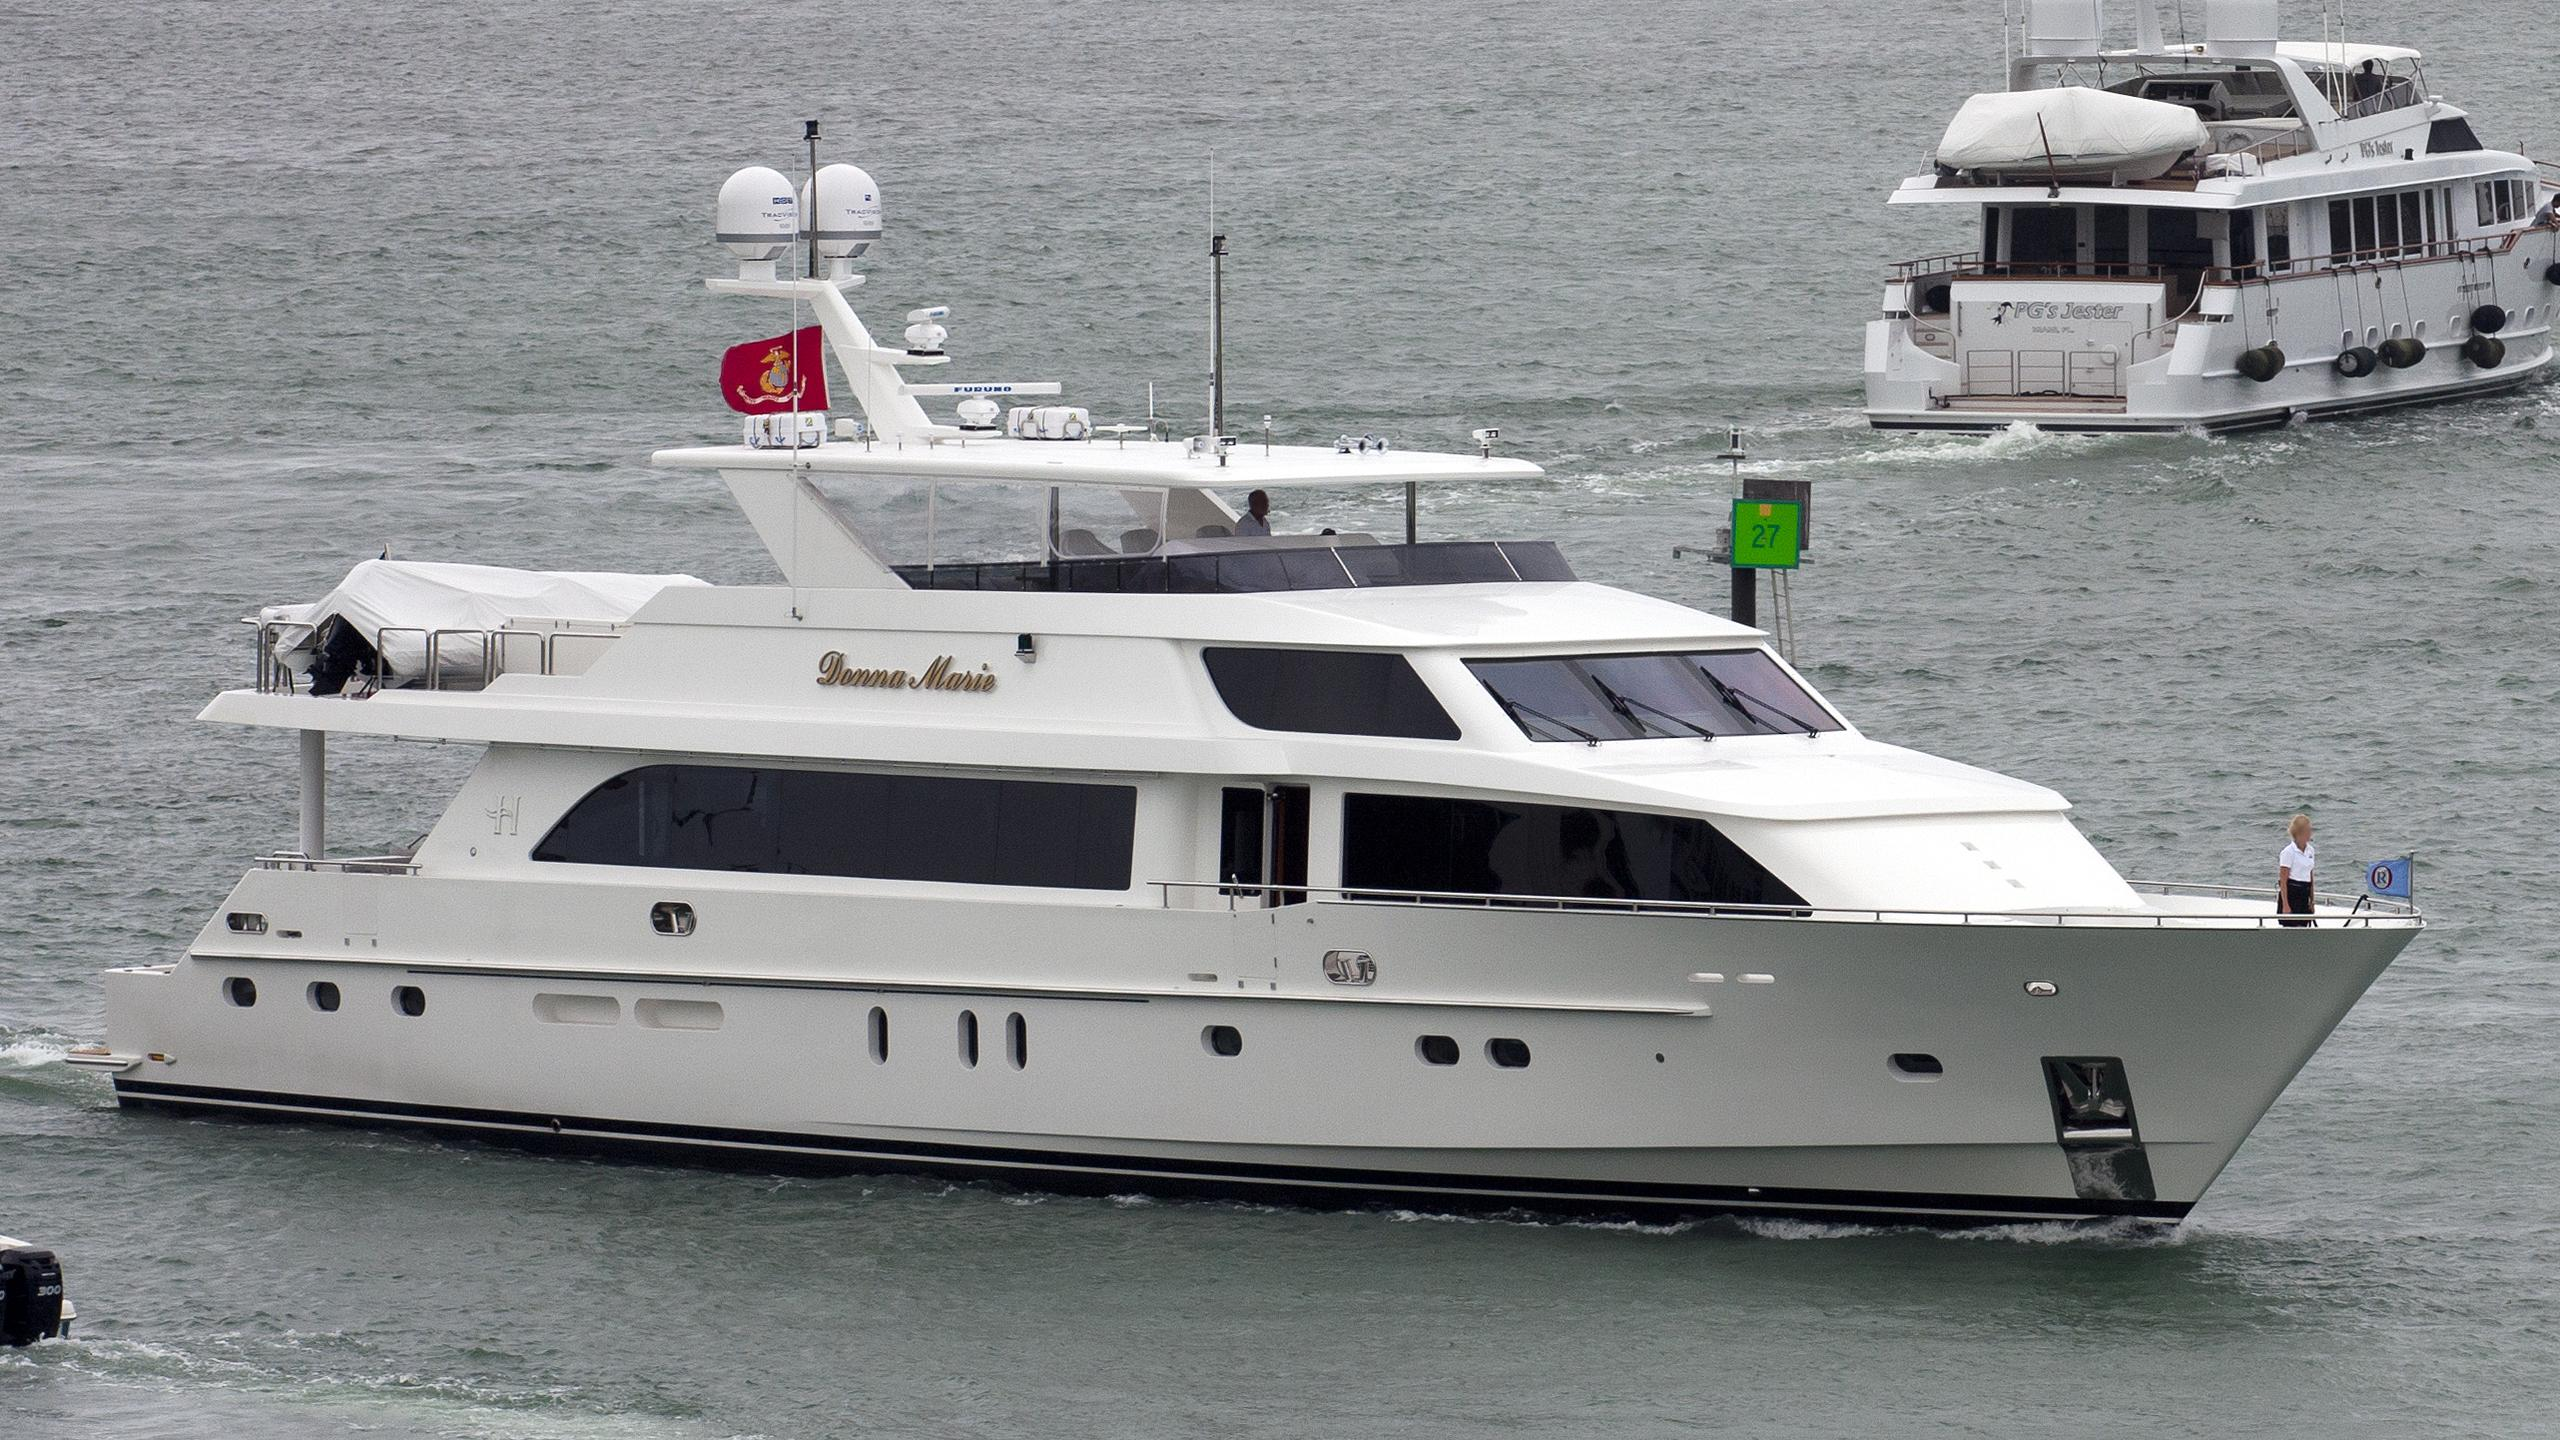 donna-marie-ii-yacht-exterior